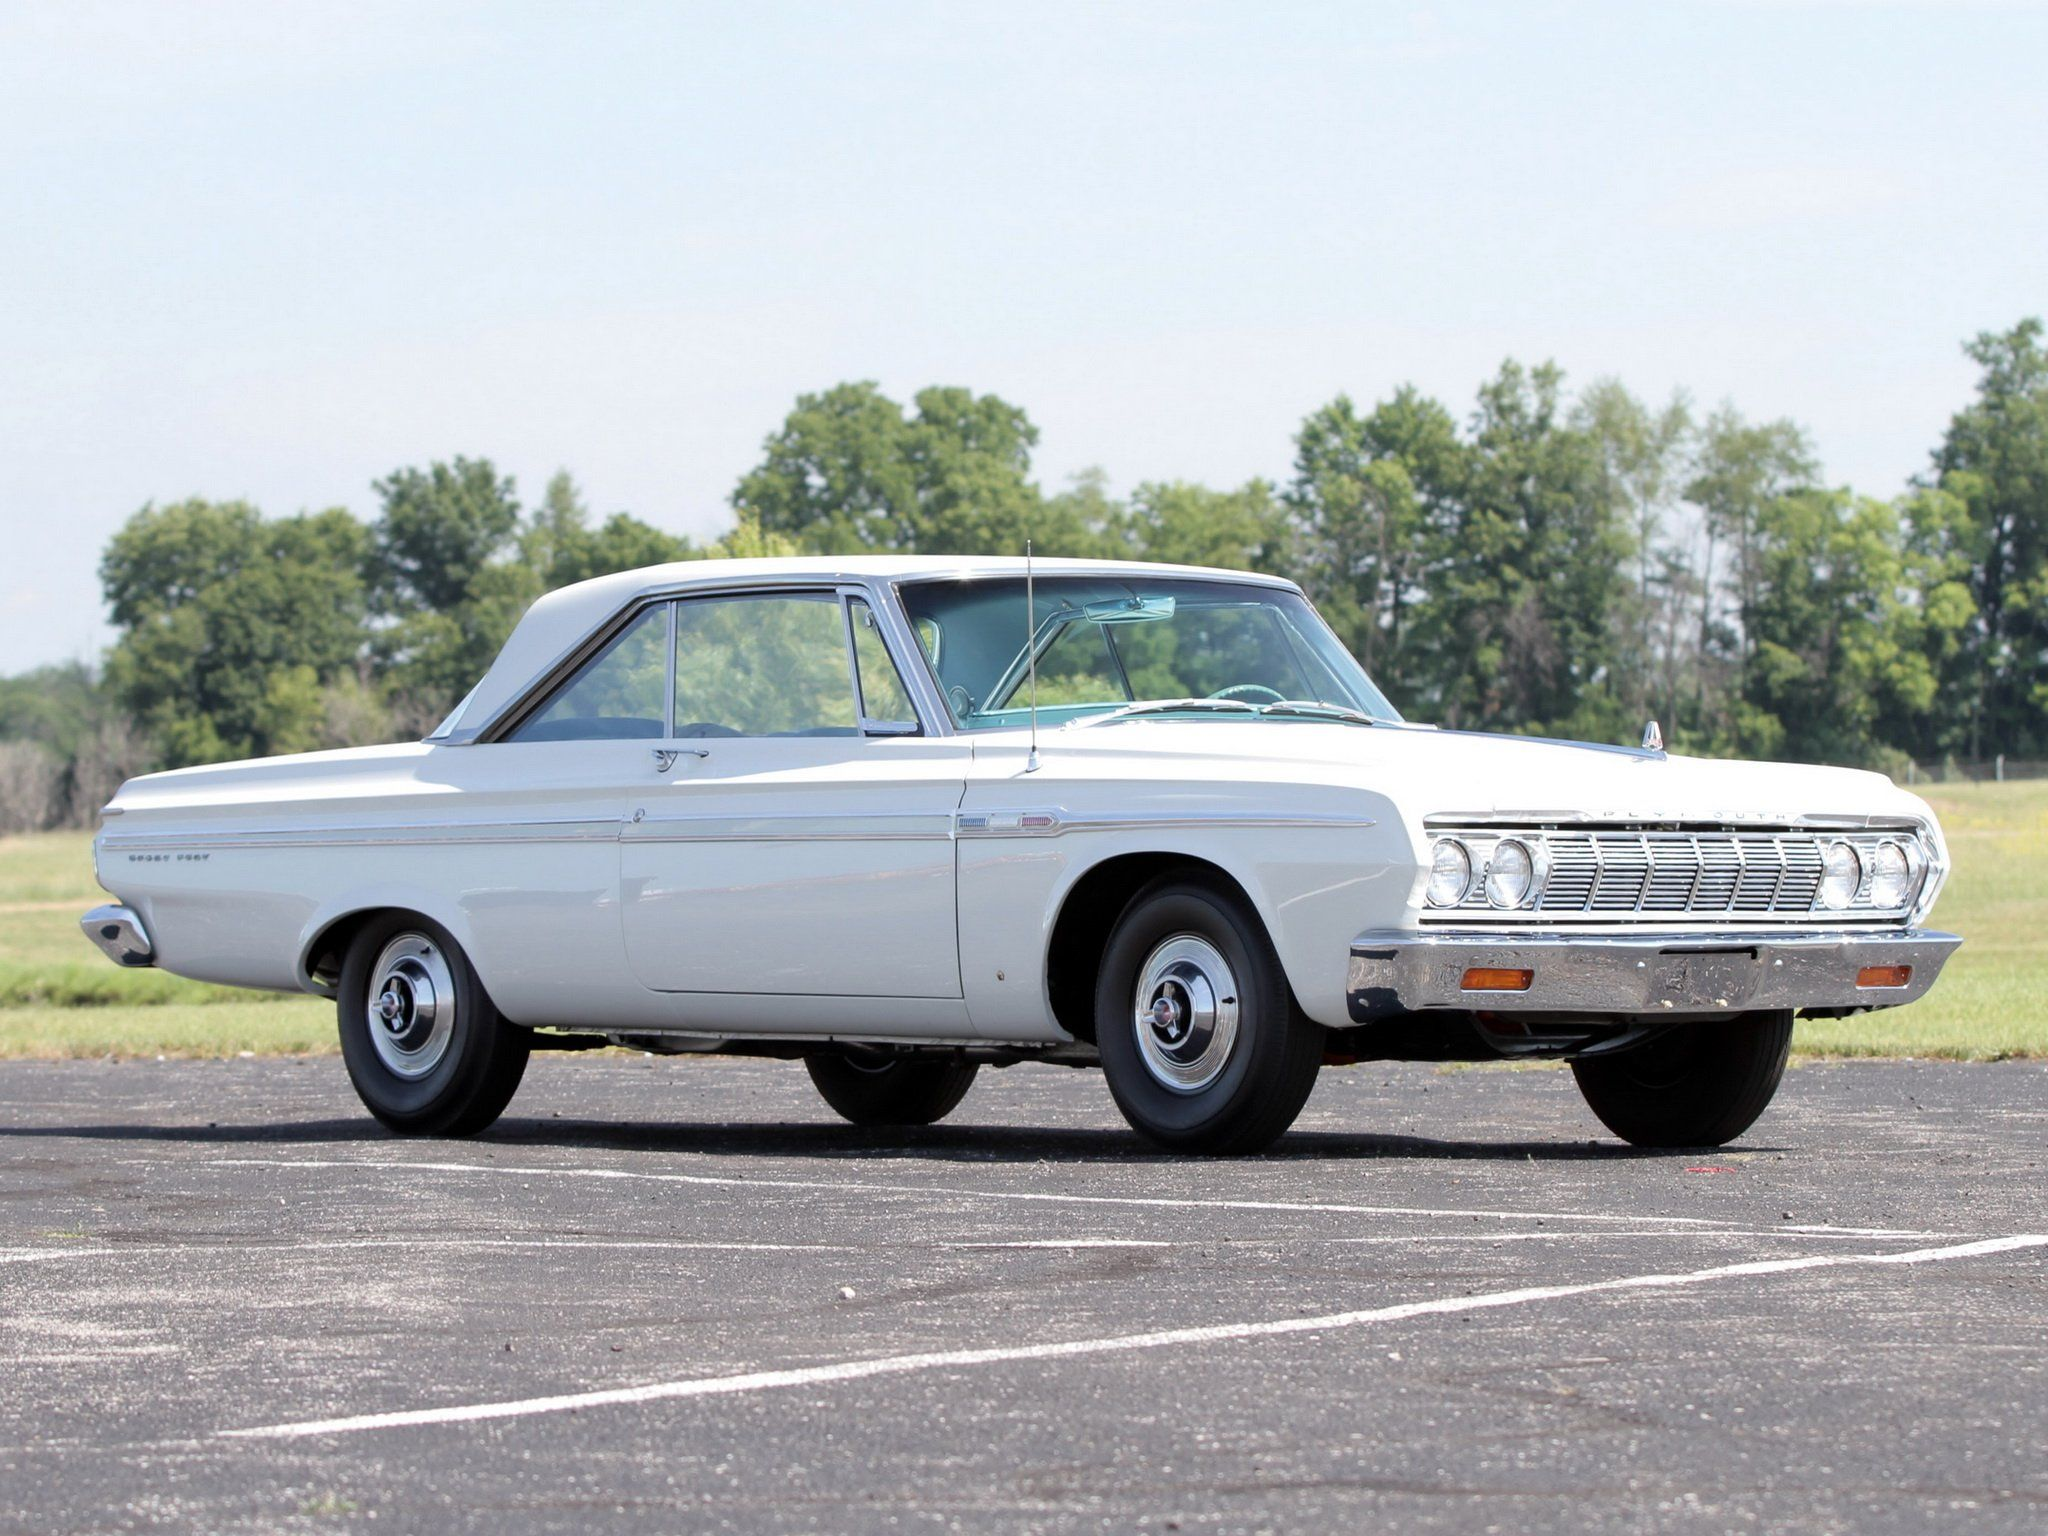 1964 Plymouth Sport Fury 426 'Max Wedge Stage III